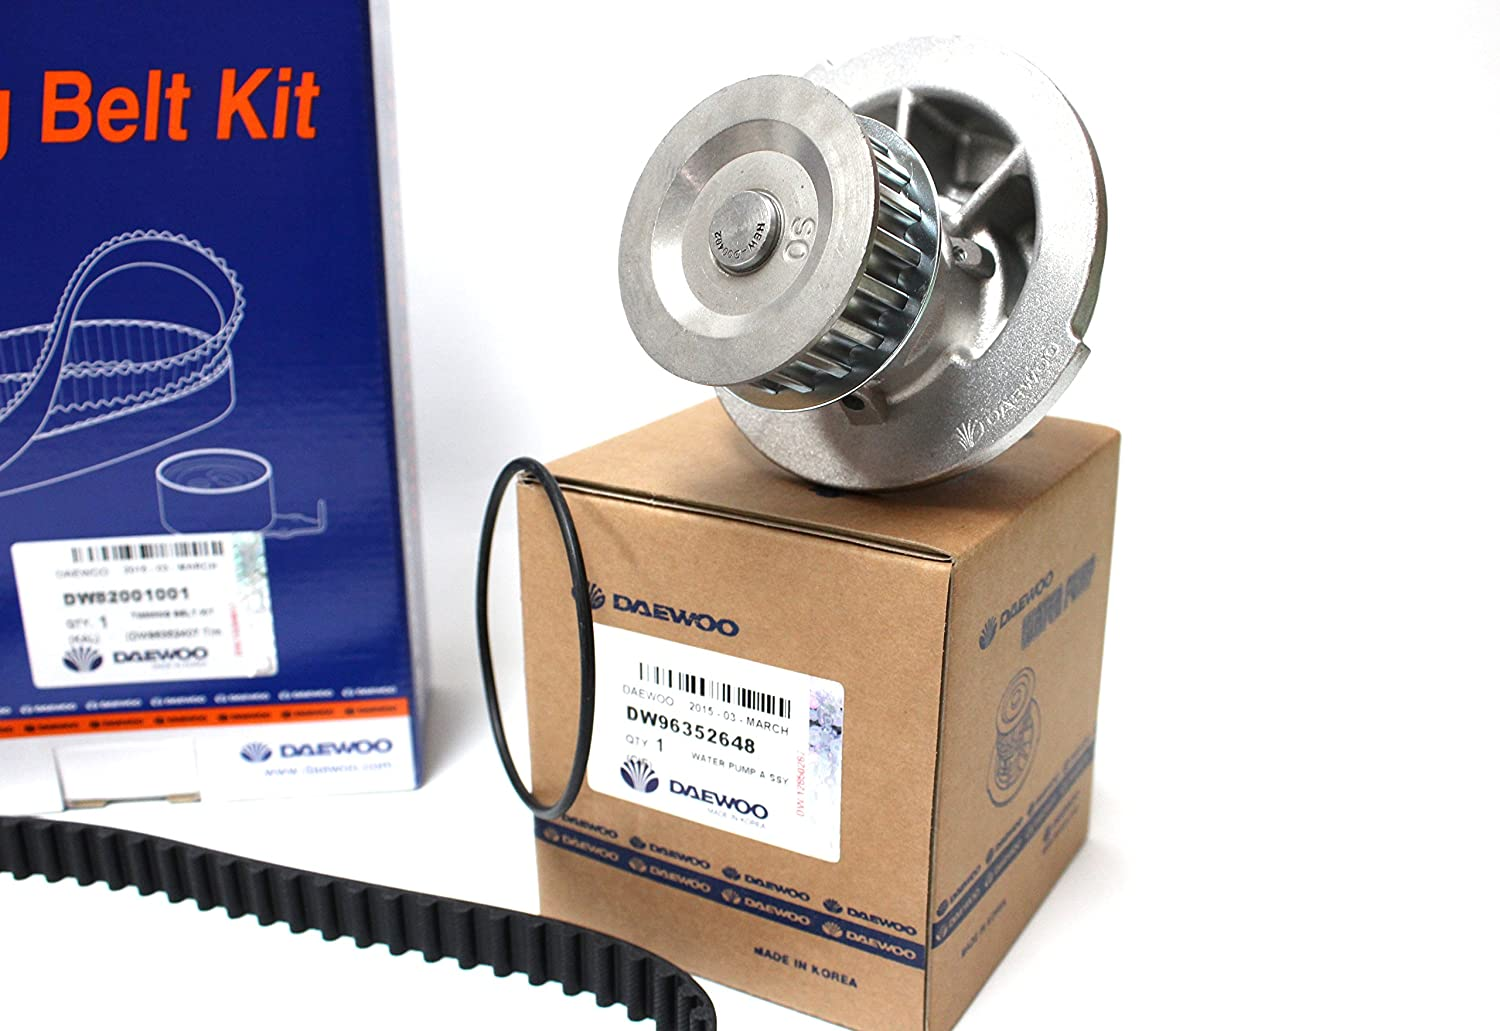 Amazon.com: Timing Belt Kit for Chevy Chevorlet Corsa Daewoo Cielo Lanos with Water Pump (96352648) Part: 82001001: Automotive